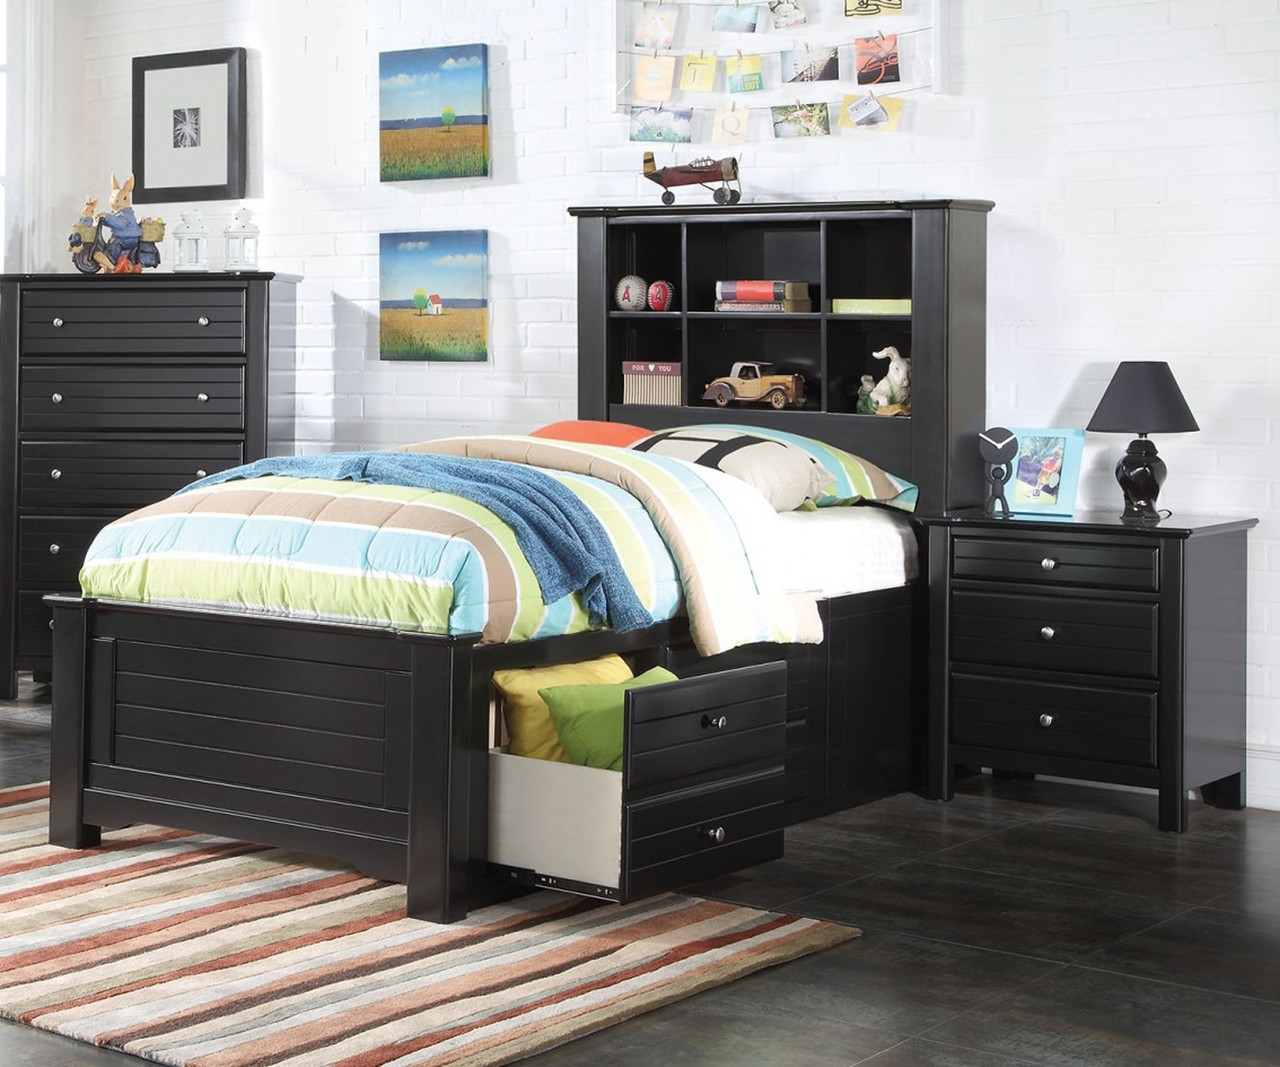 Mallowsea Bookcase Storage Bed Twin Size Black